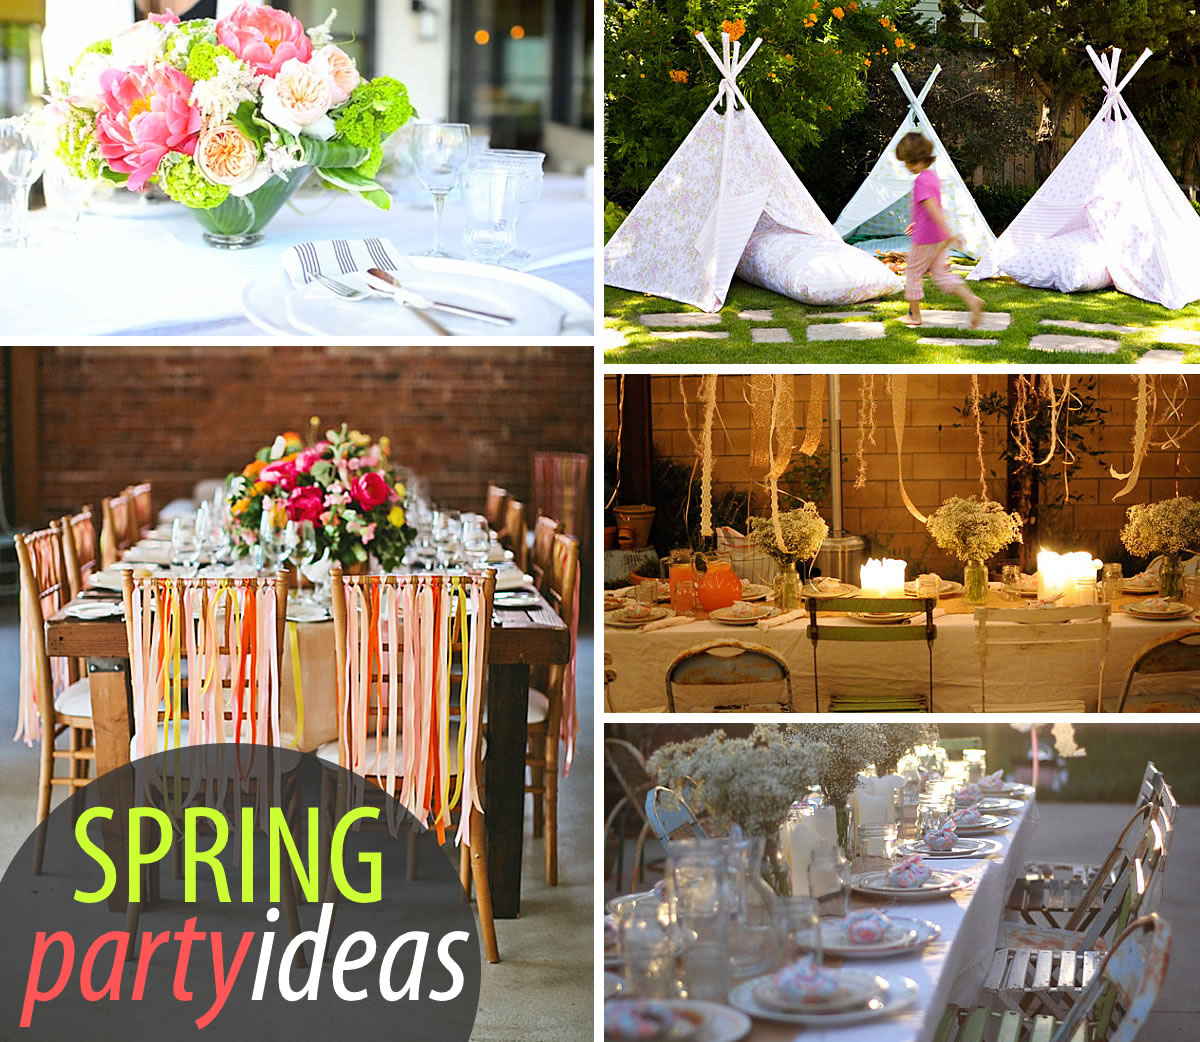 party ideas - spring